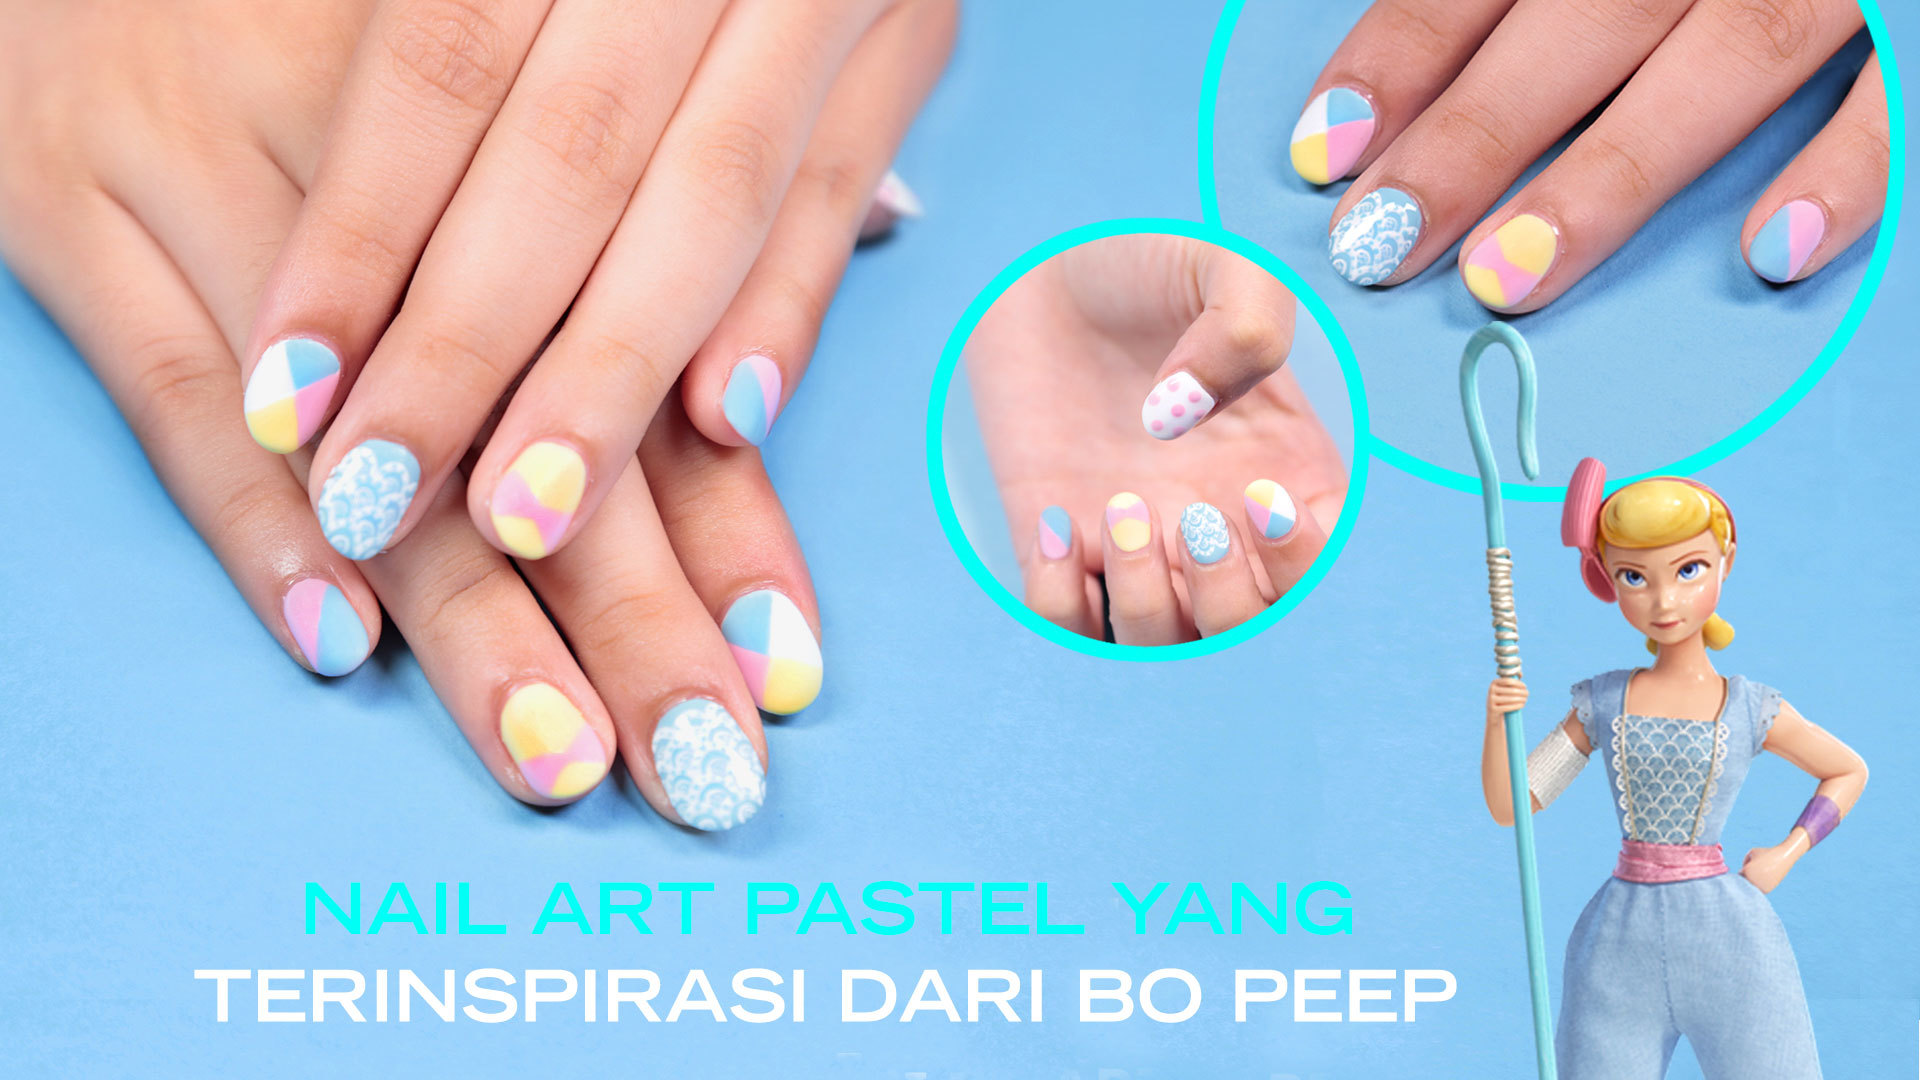 Disney Style: Nail art inspired by Bo Peep from Disney and Pixar's Toy Story 4